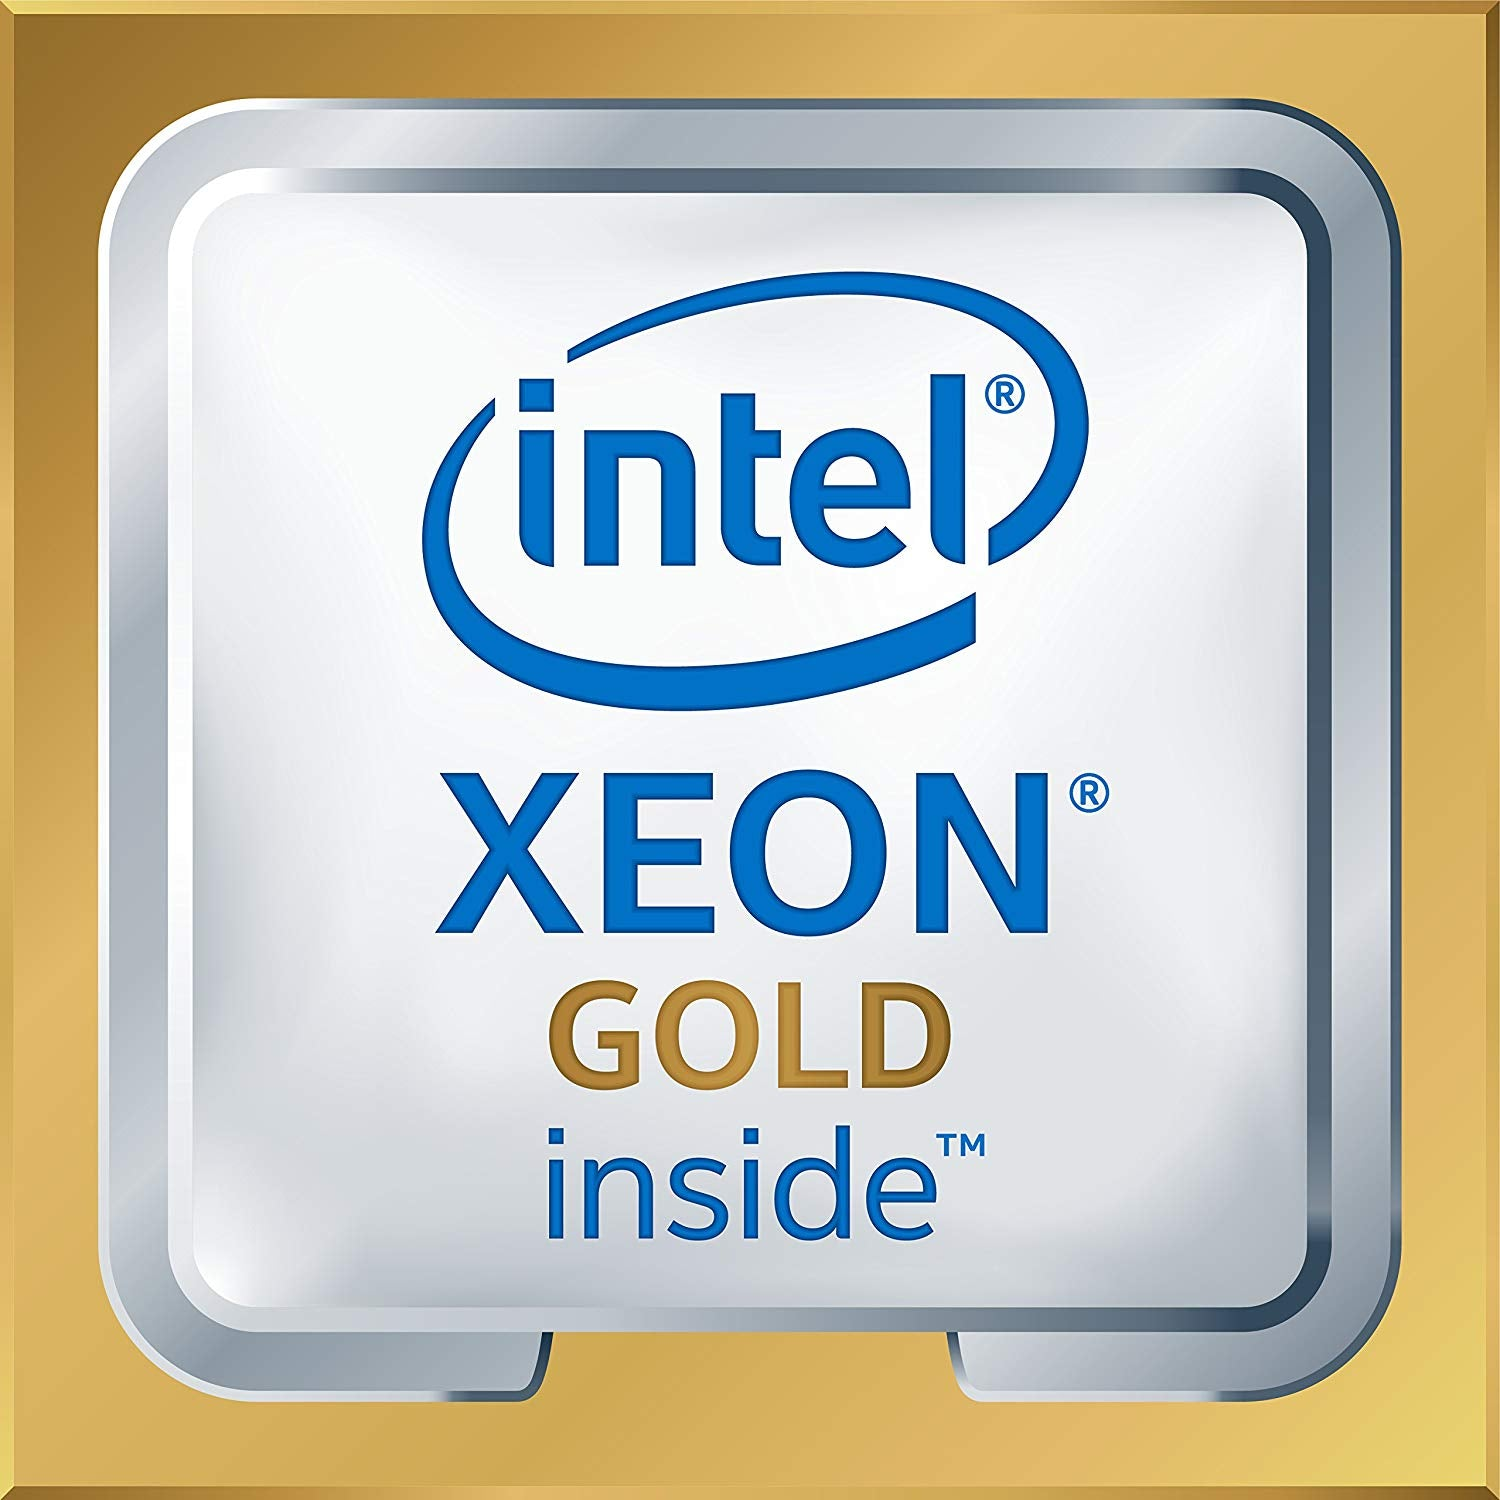 Intel Xeon Gold 6240 18-Core 2.60GHz 25MB Cache Socket FCLGA3647 (SRF8X) Server Processor